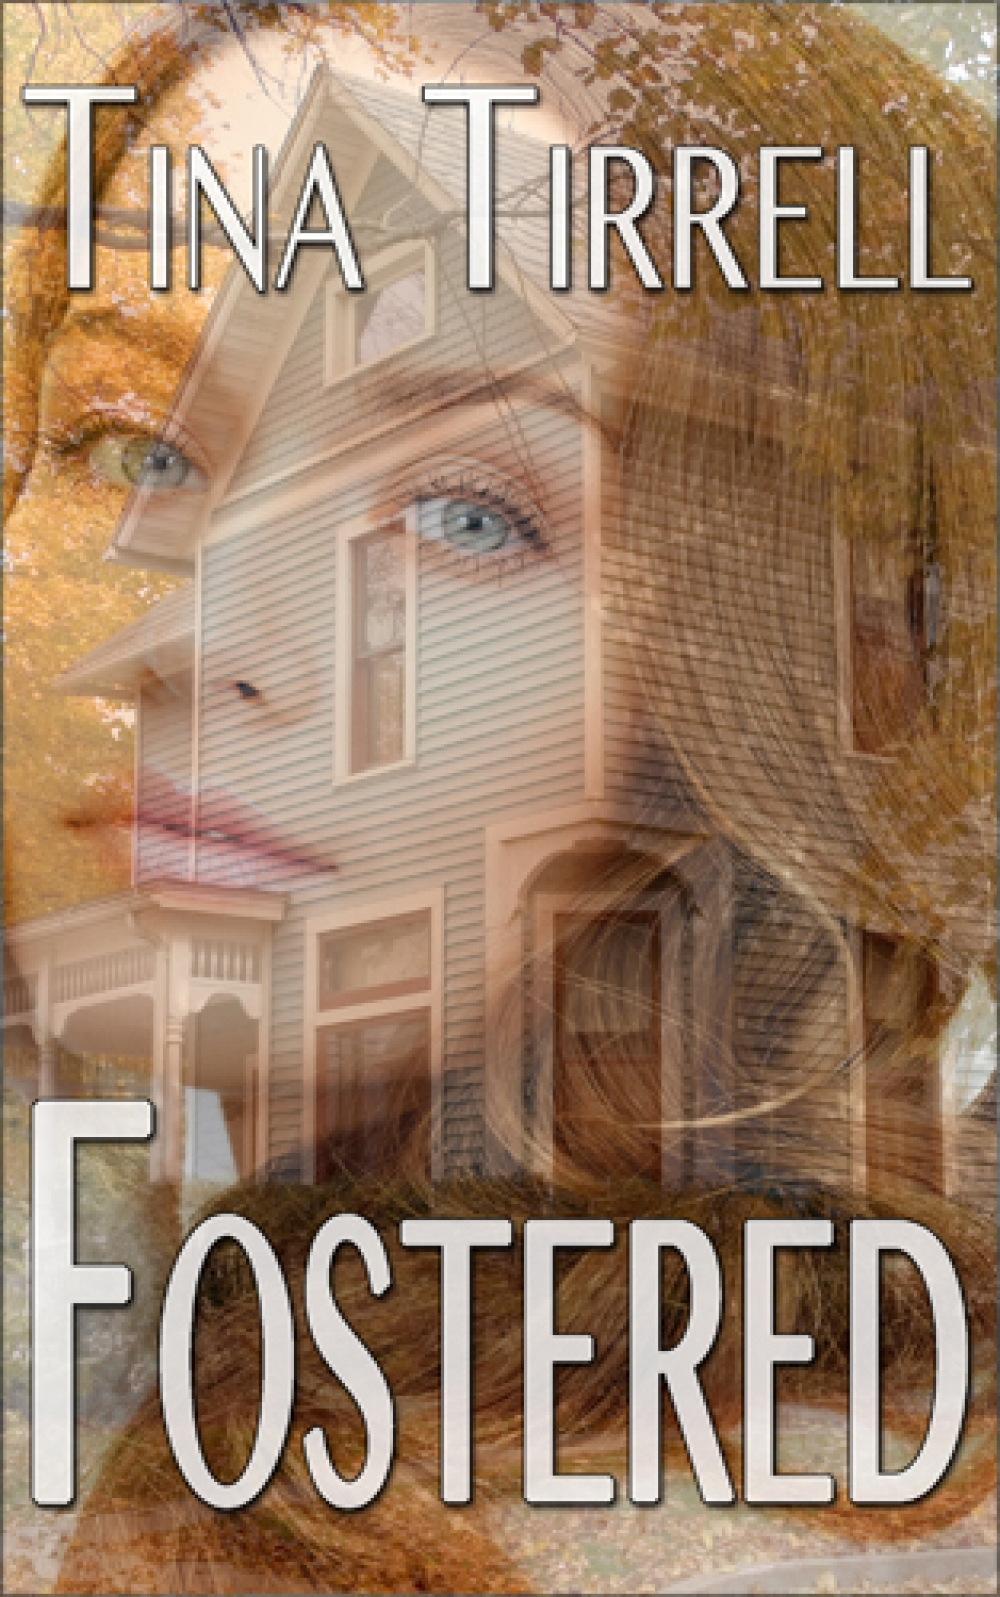 Fostered: A Family Tale of Forbidden Love